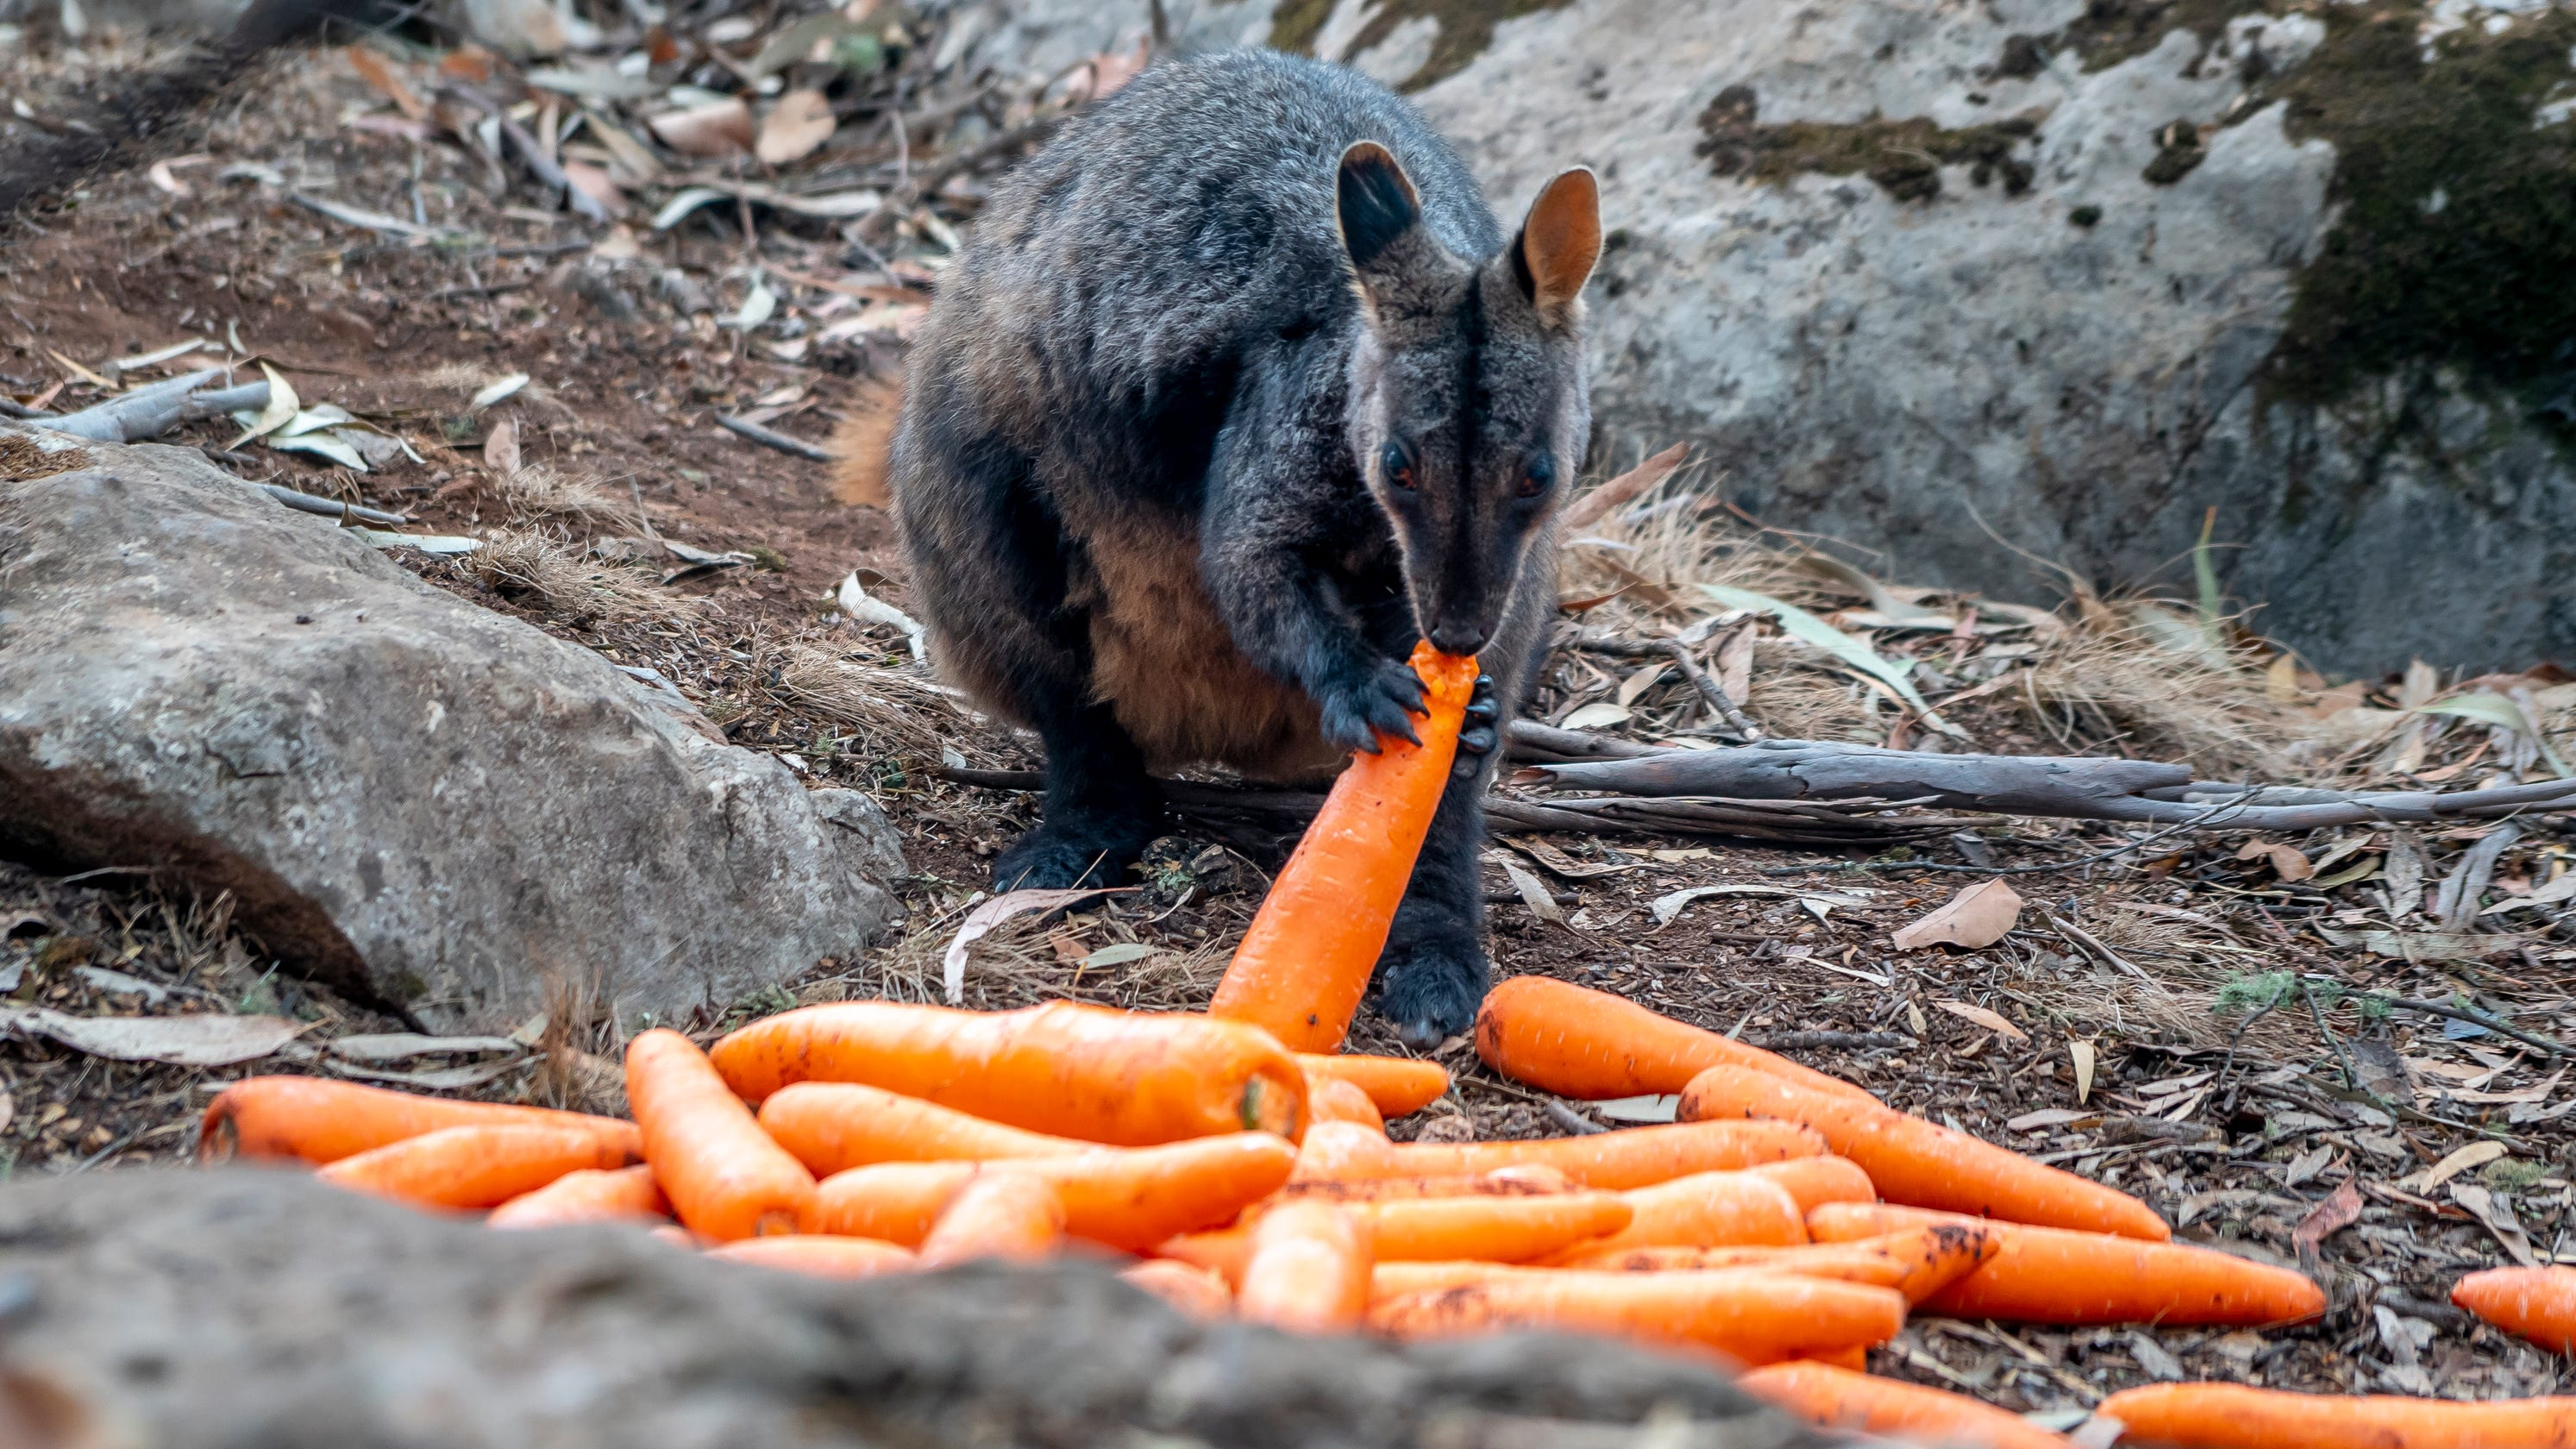 Carrots falling from the sky: Australia drops 4,600 kilos of food, water from helicopters to feed hungry wallabies thumbnail